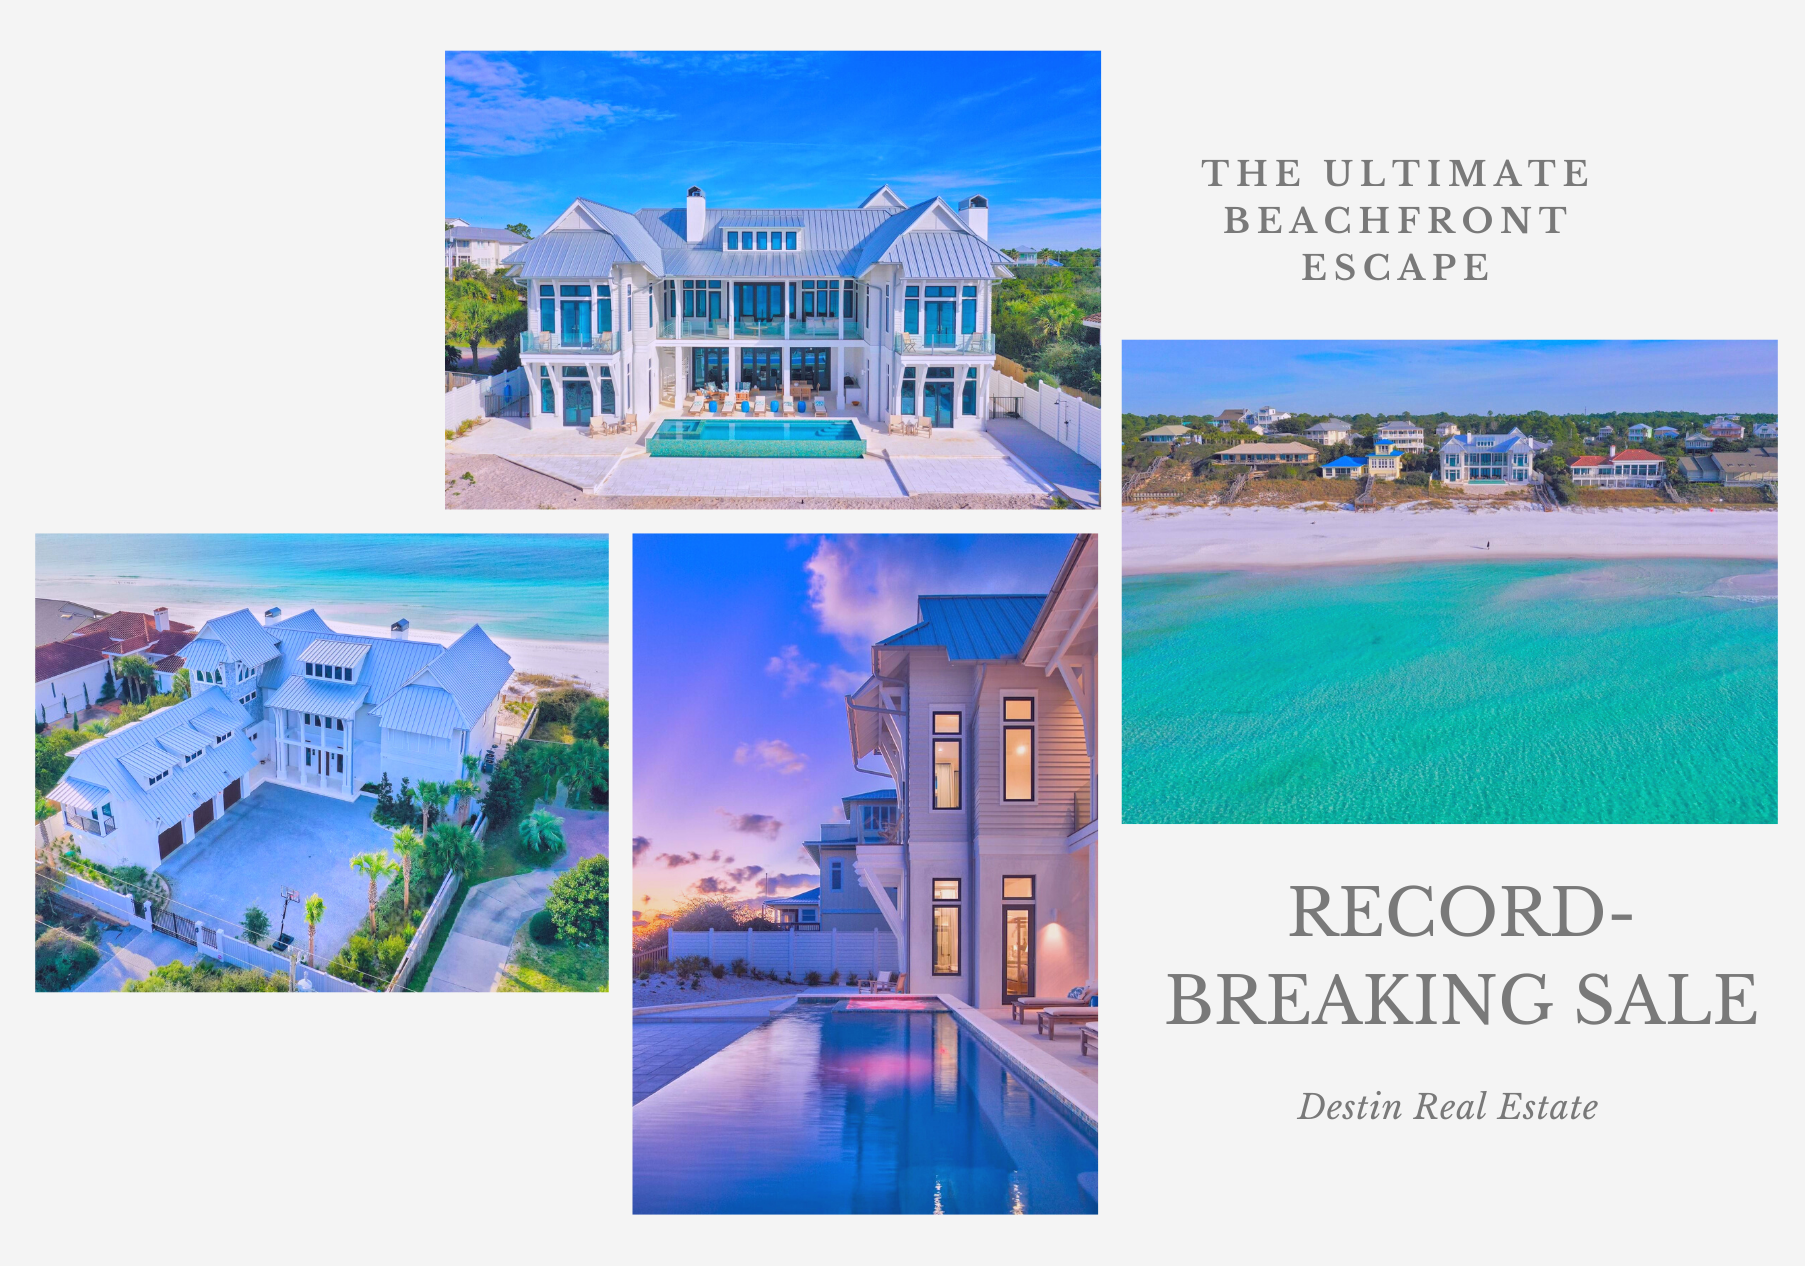 NEWS! Record breaking gulf front home sale in Santa Rosa Beach, Florida